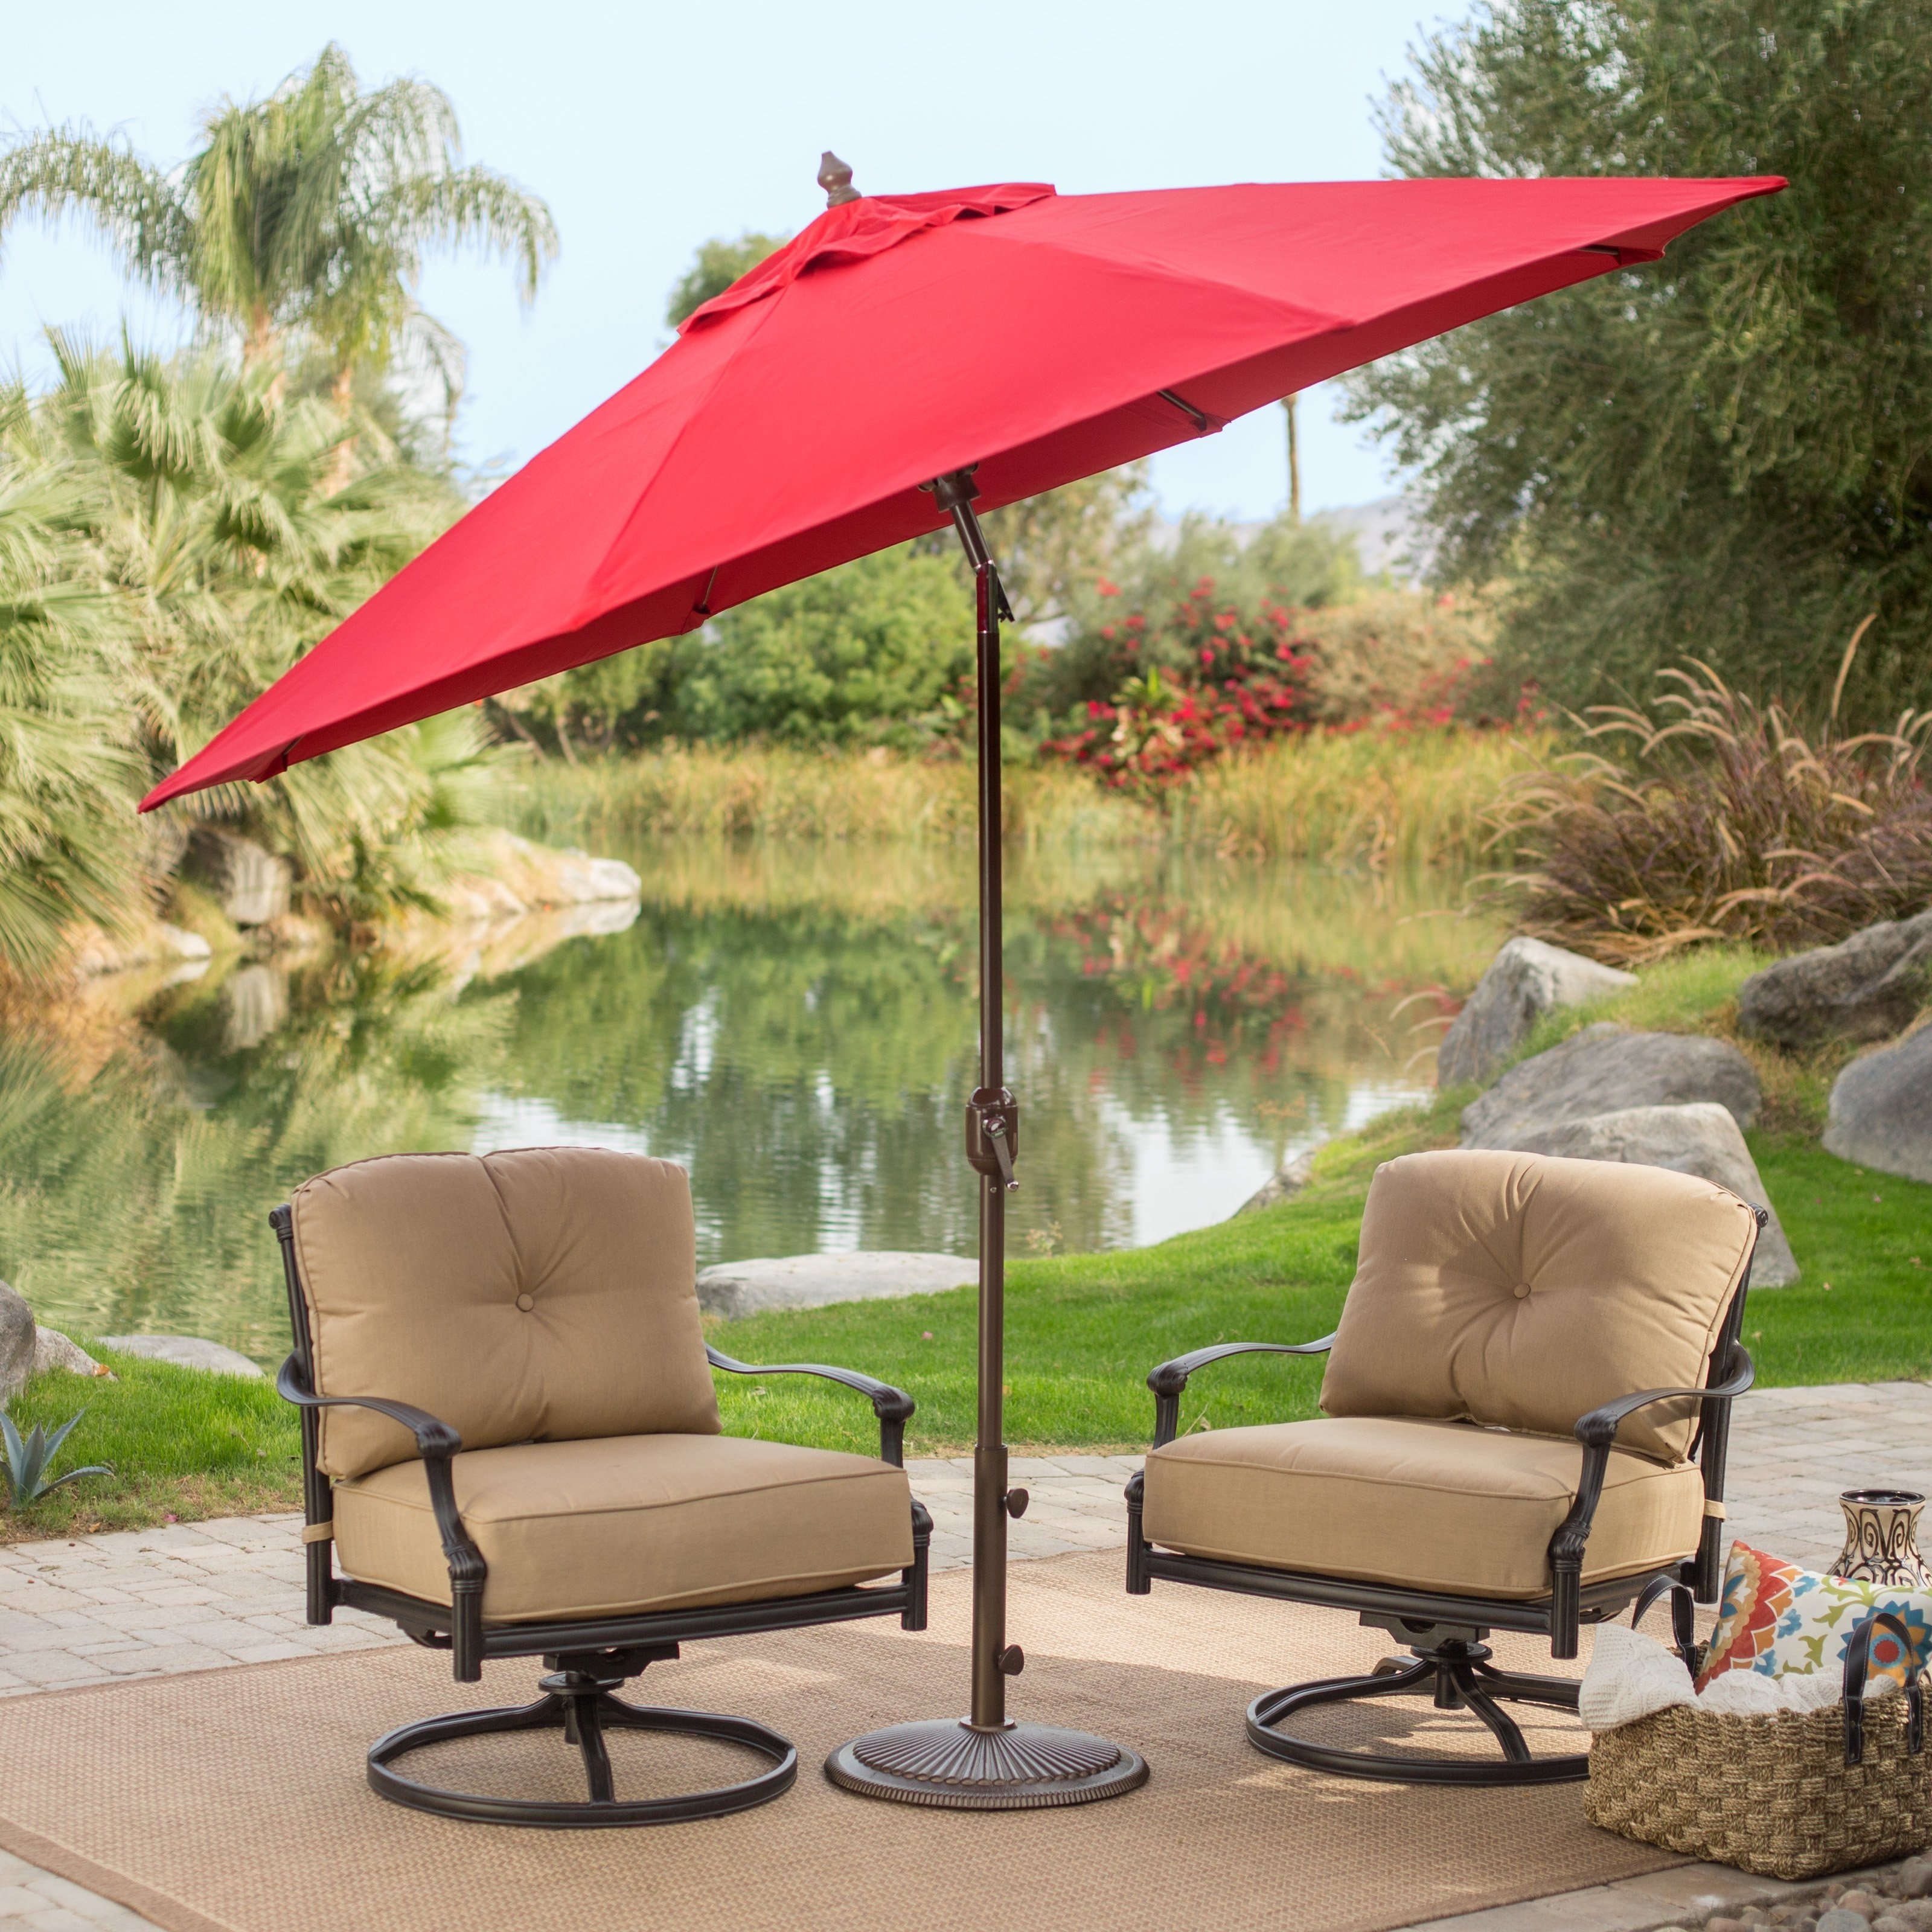 Commercial Patio Umbrellas Sunbrella Throughout Preferred Coral Coast 9 Ft (View 5 of 20)